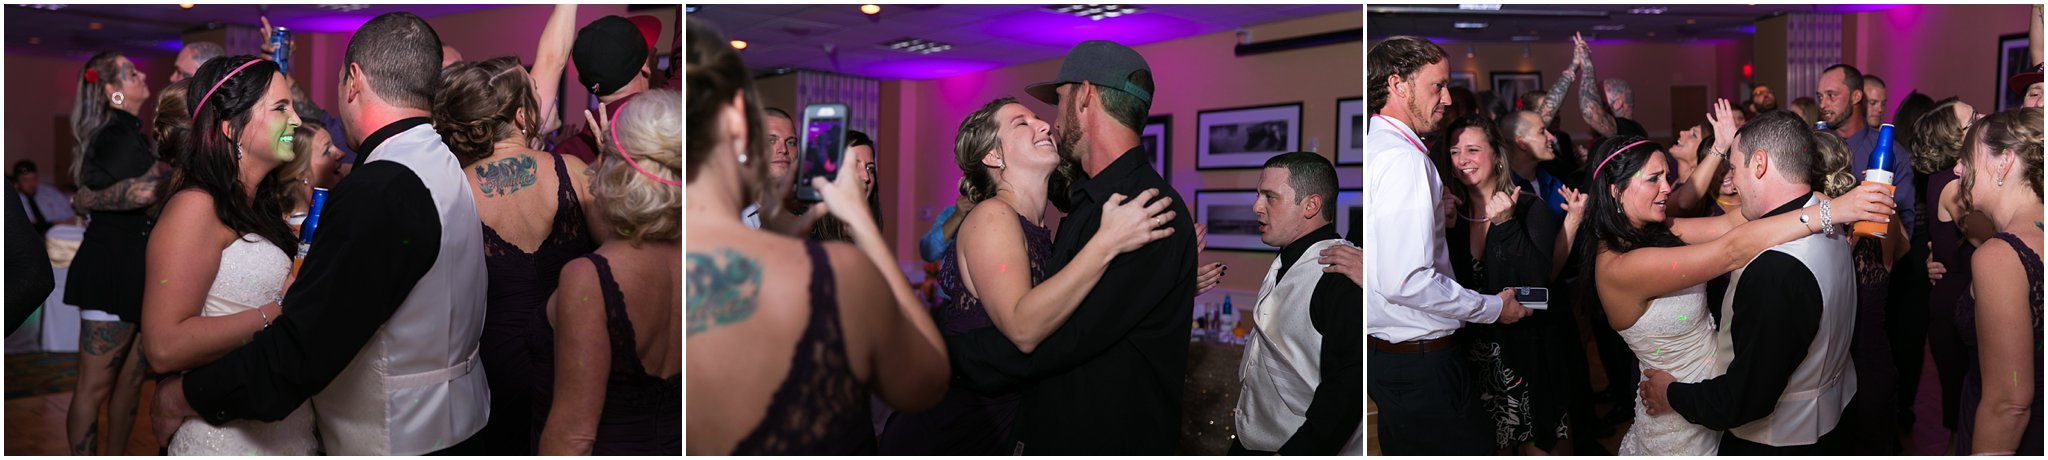 jessica_ryan_photography_wedding_virginia_beach_oceanfront_holiday_inn_north_suites_hotel_wedding_0718